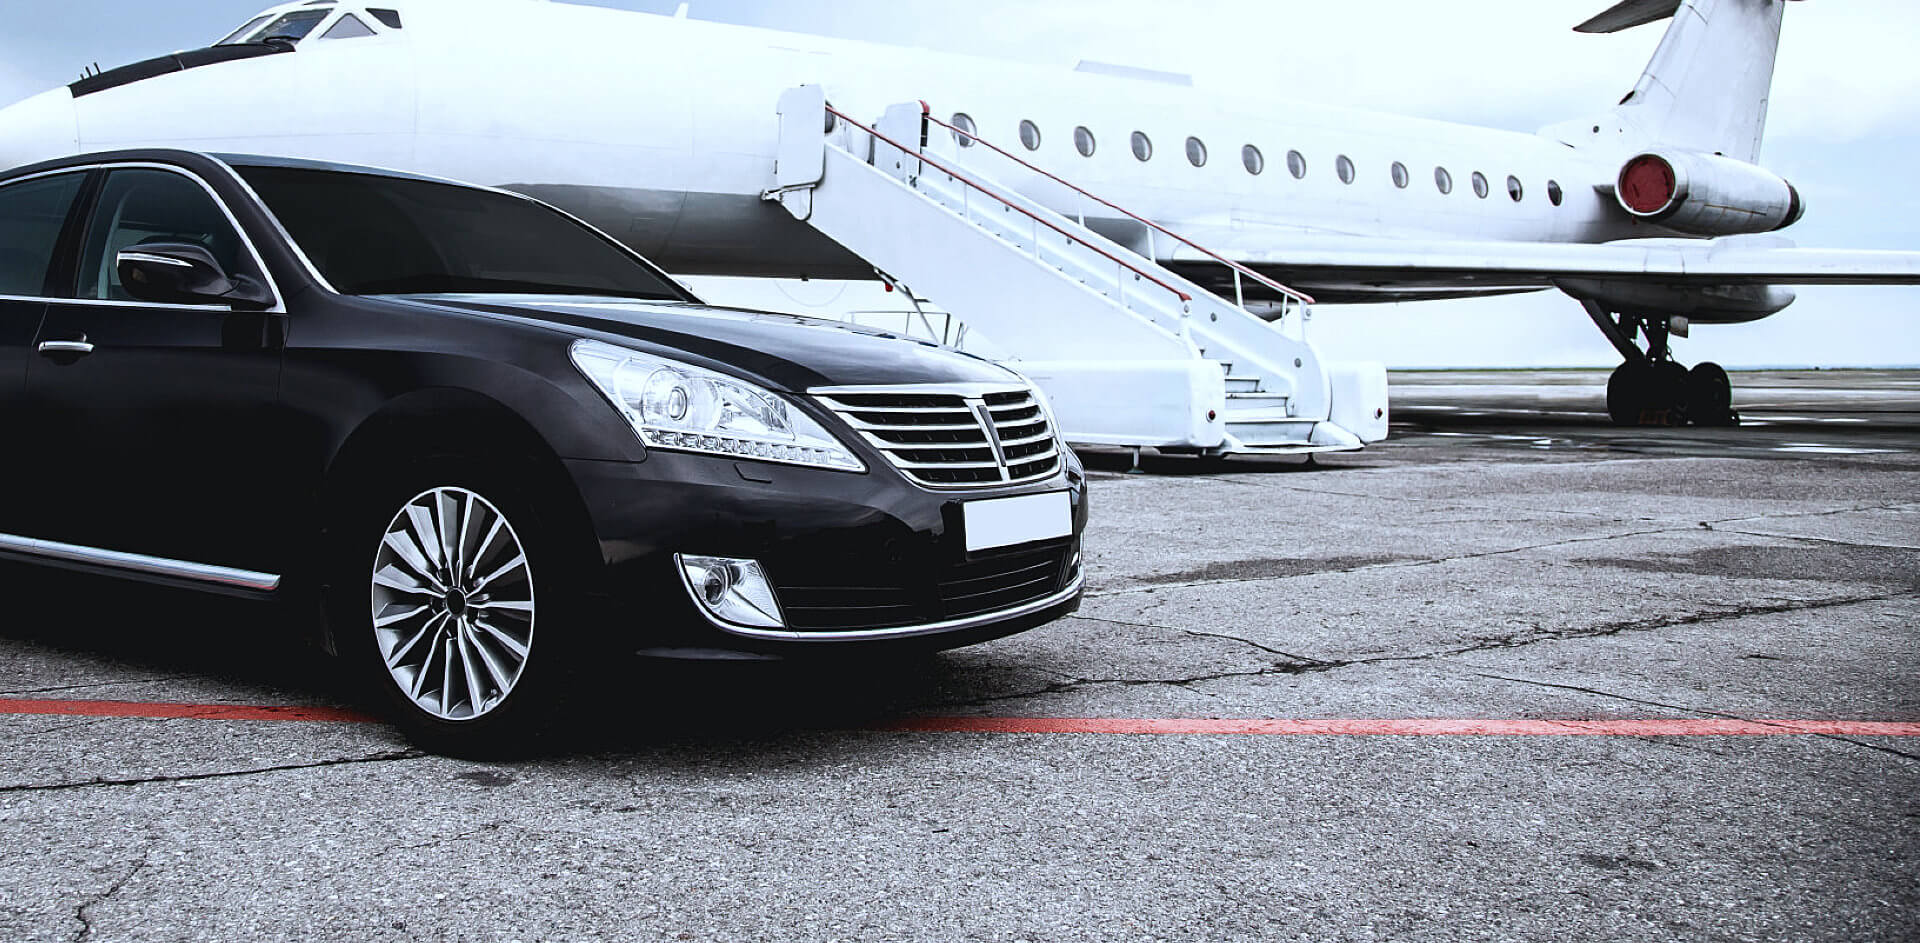 portrait of car with private airplane at the back